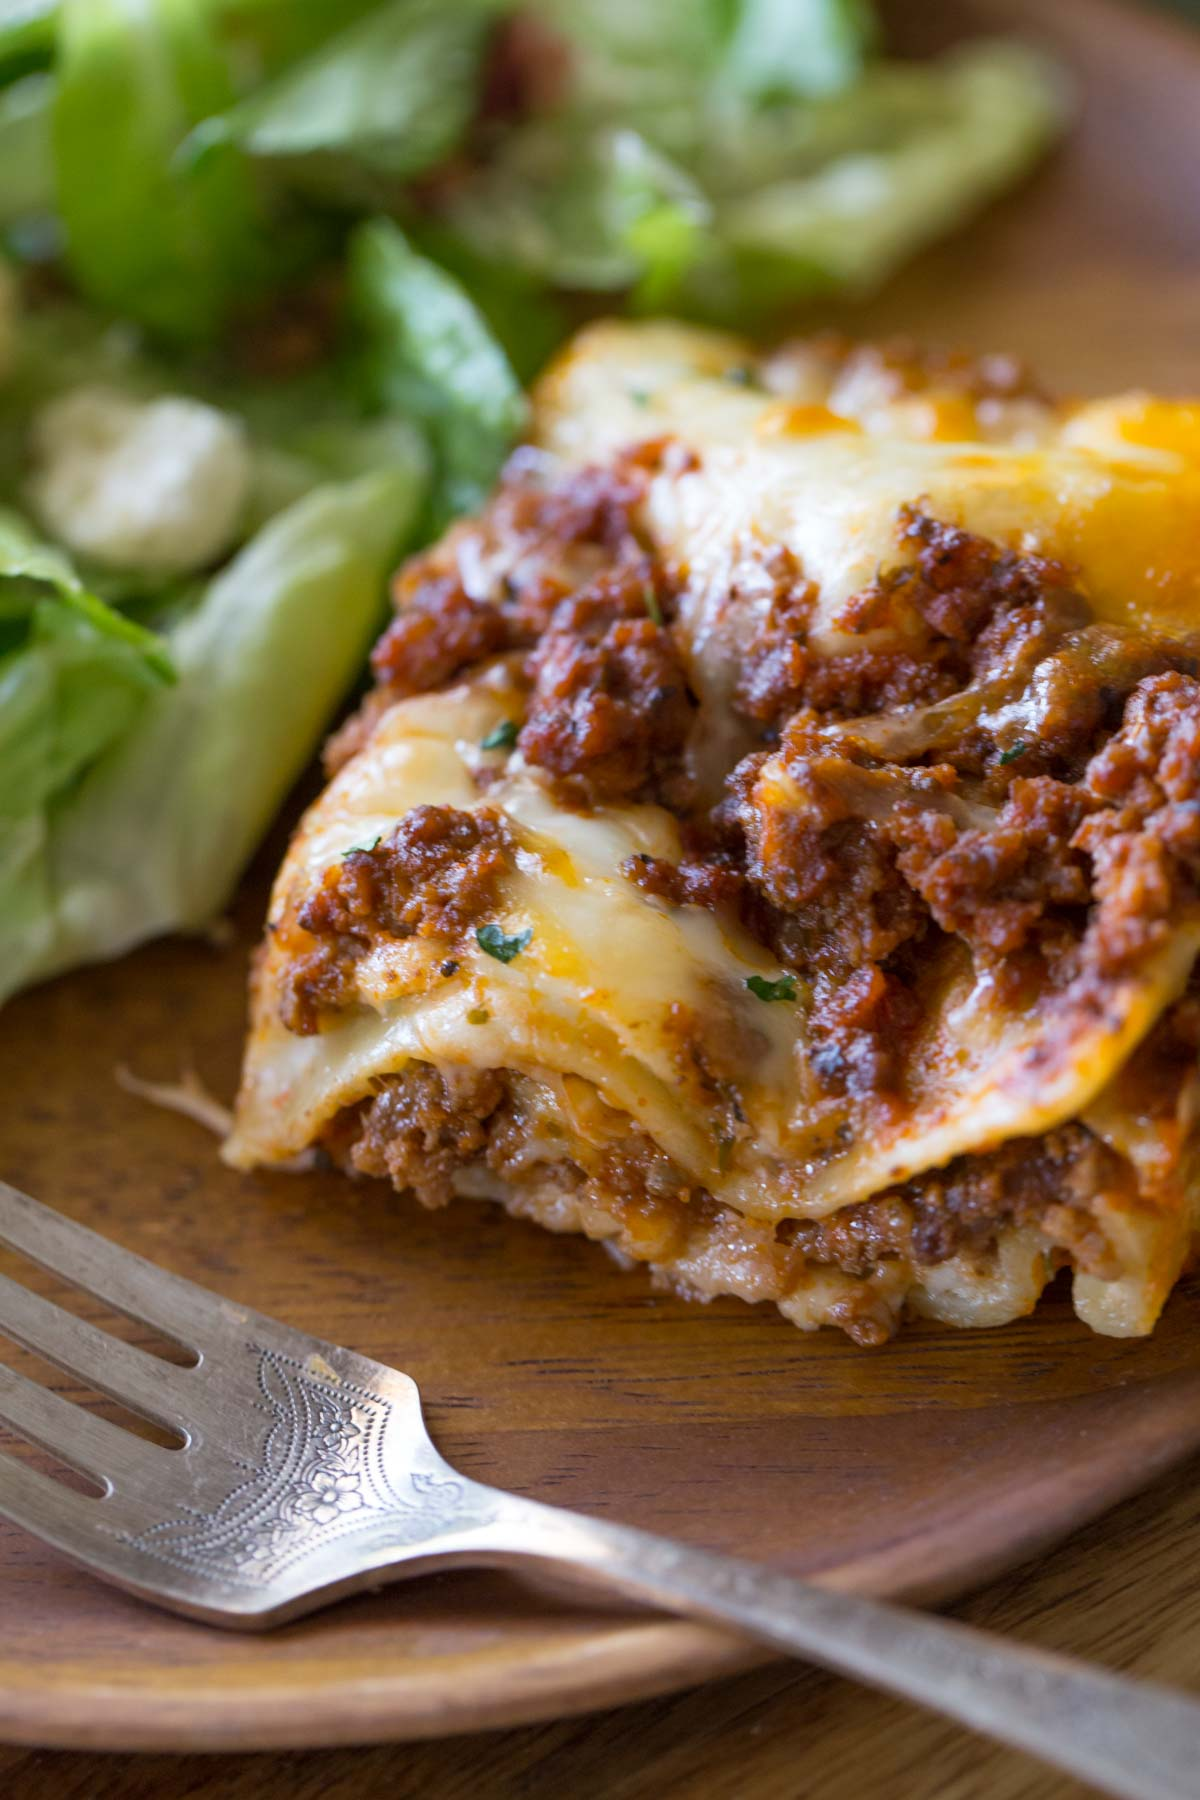 A piece of Simple Homemade Lasagna on a wood plate with a fork and salad.